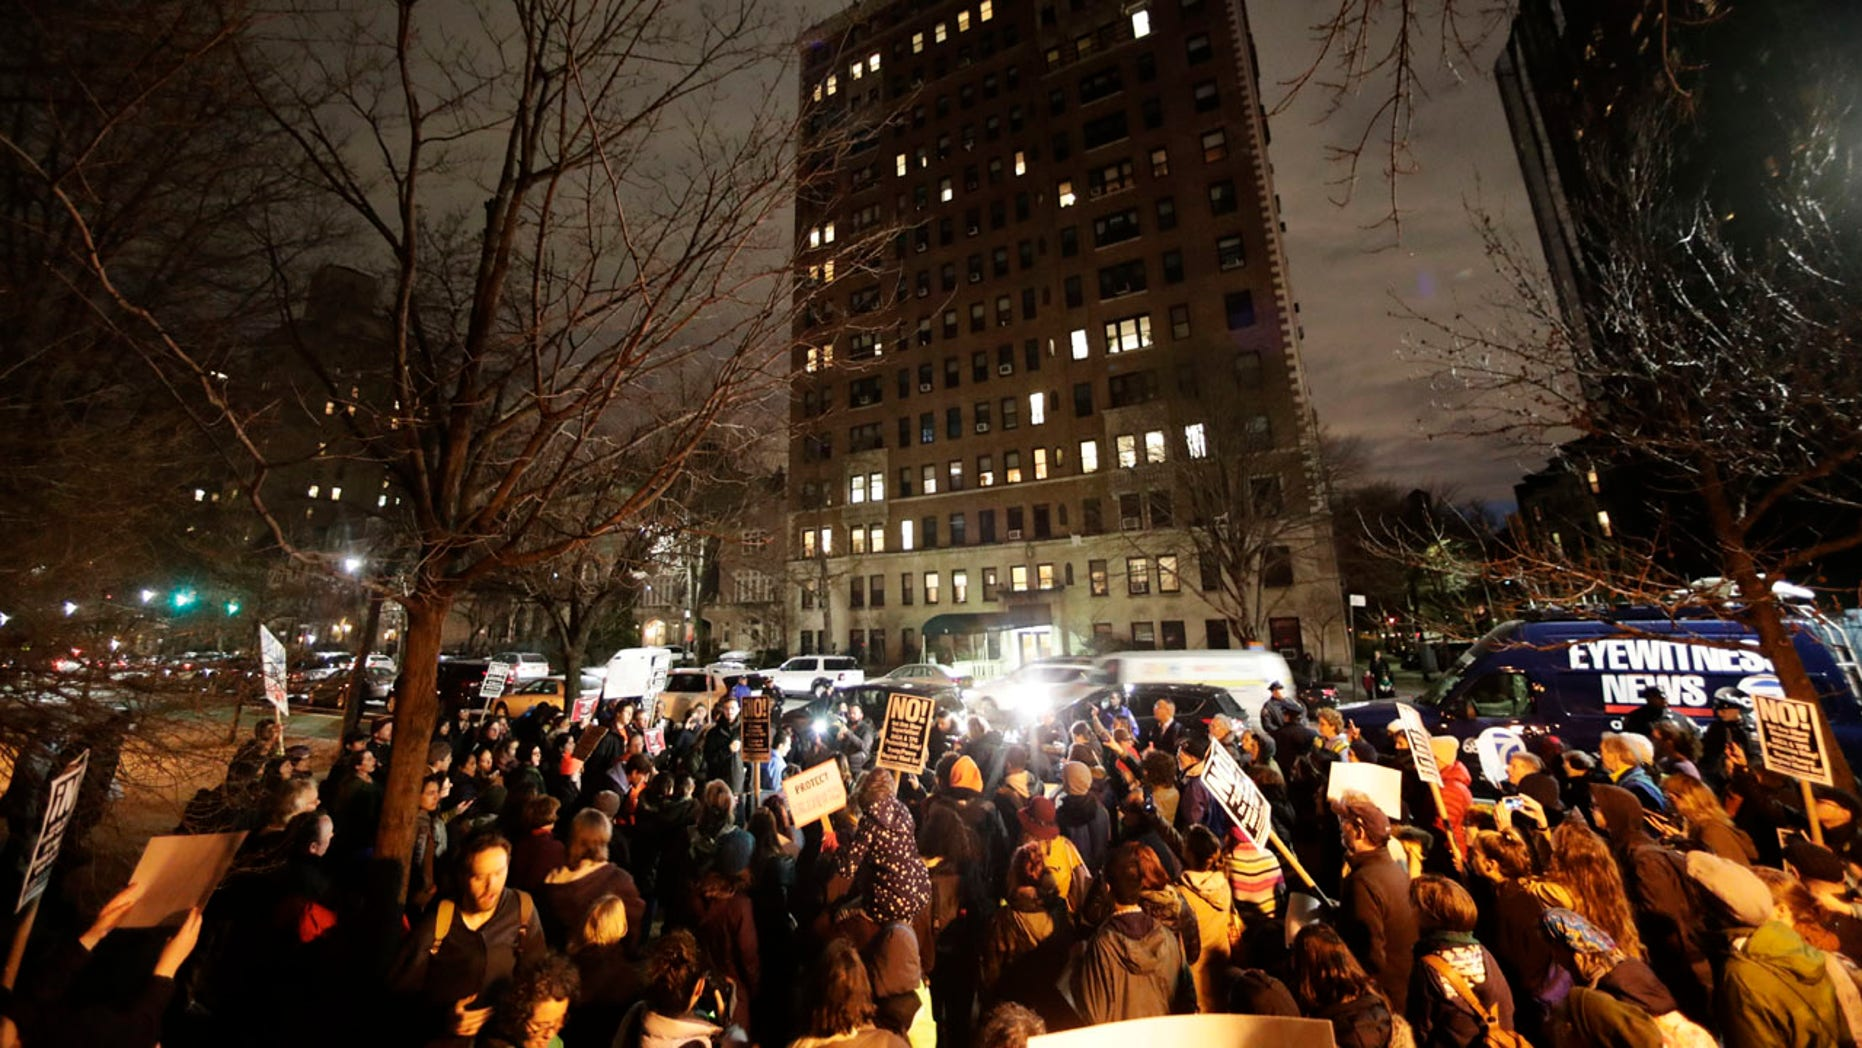 Protesters gather across the street from the home of U.S. Sen. Chuck Schumer, D-N.Y., in Brooklyn, N.Y.